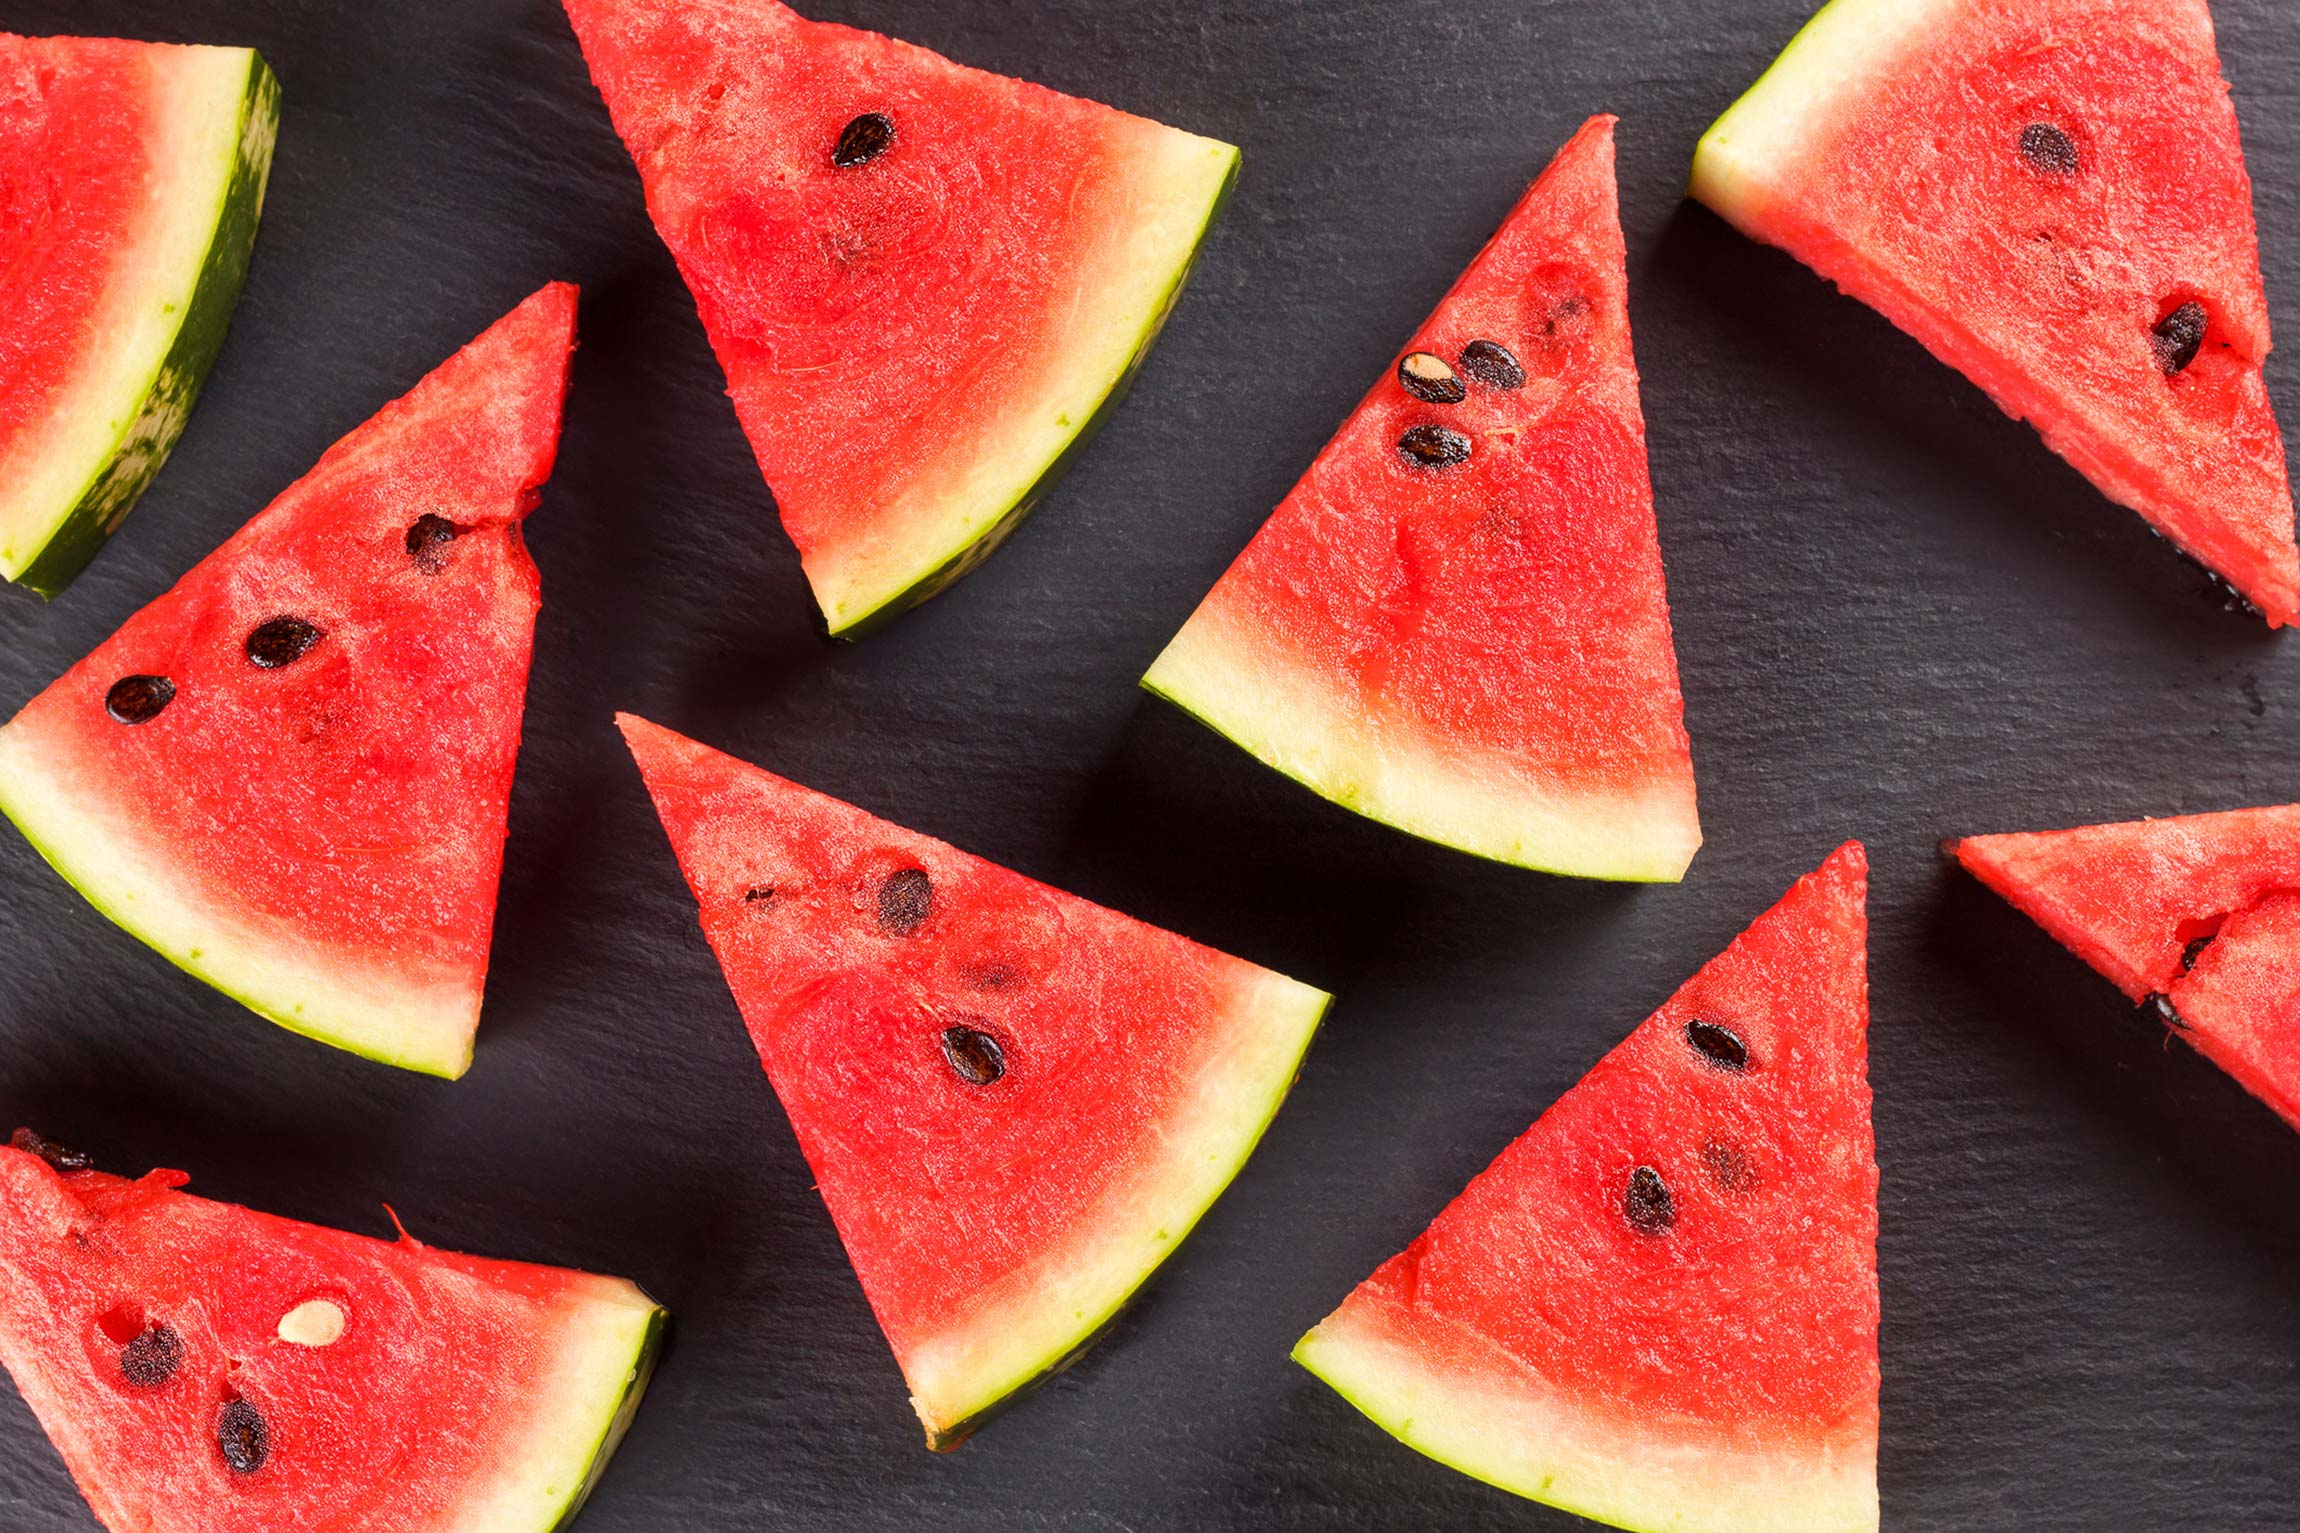 Foods for healthy skin: watermelon